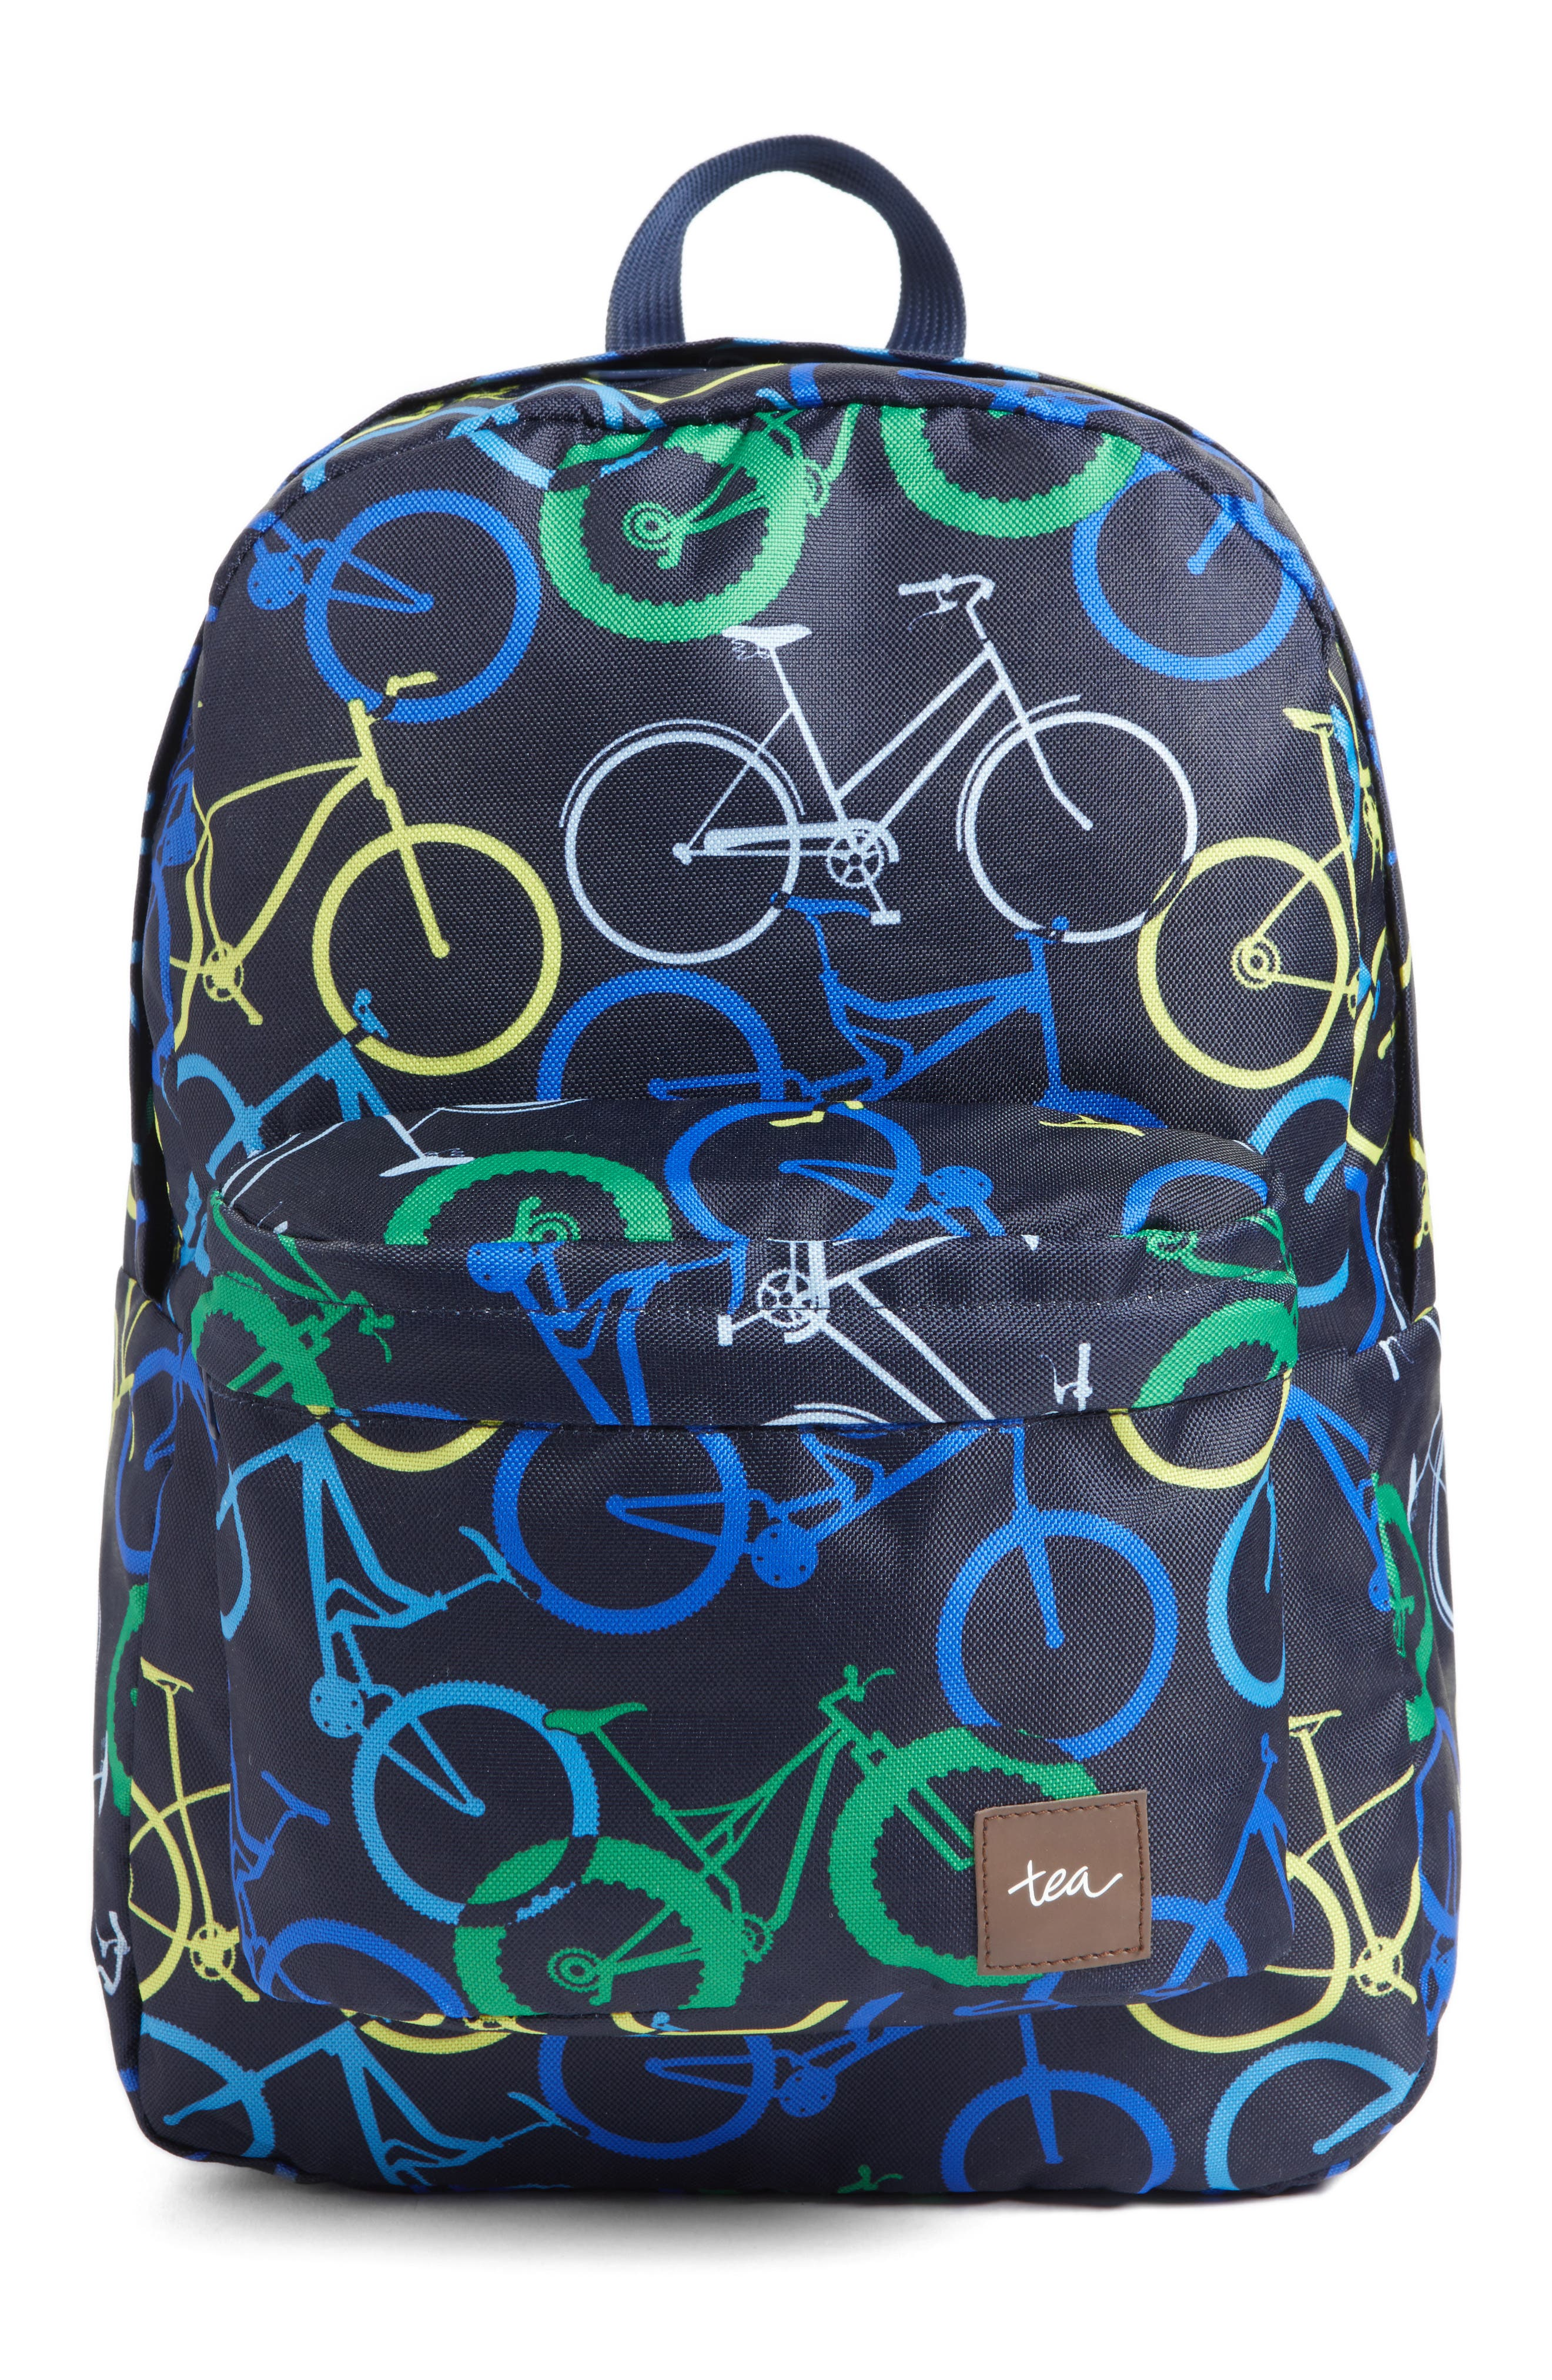 Flying Scot Backpack,                         Main,                         color, 411